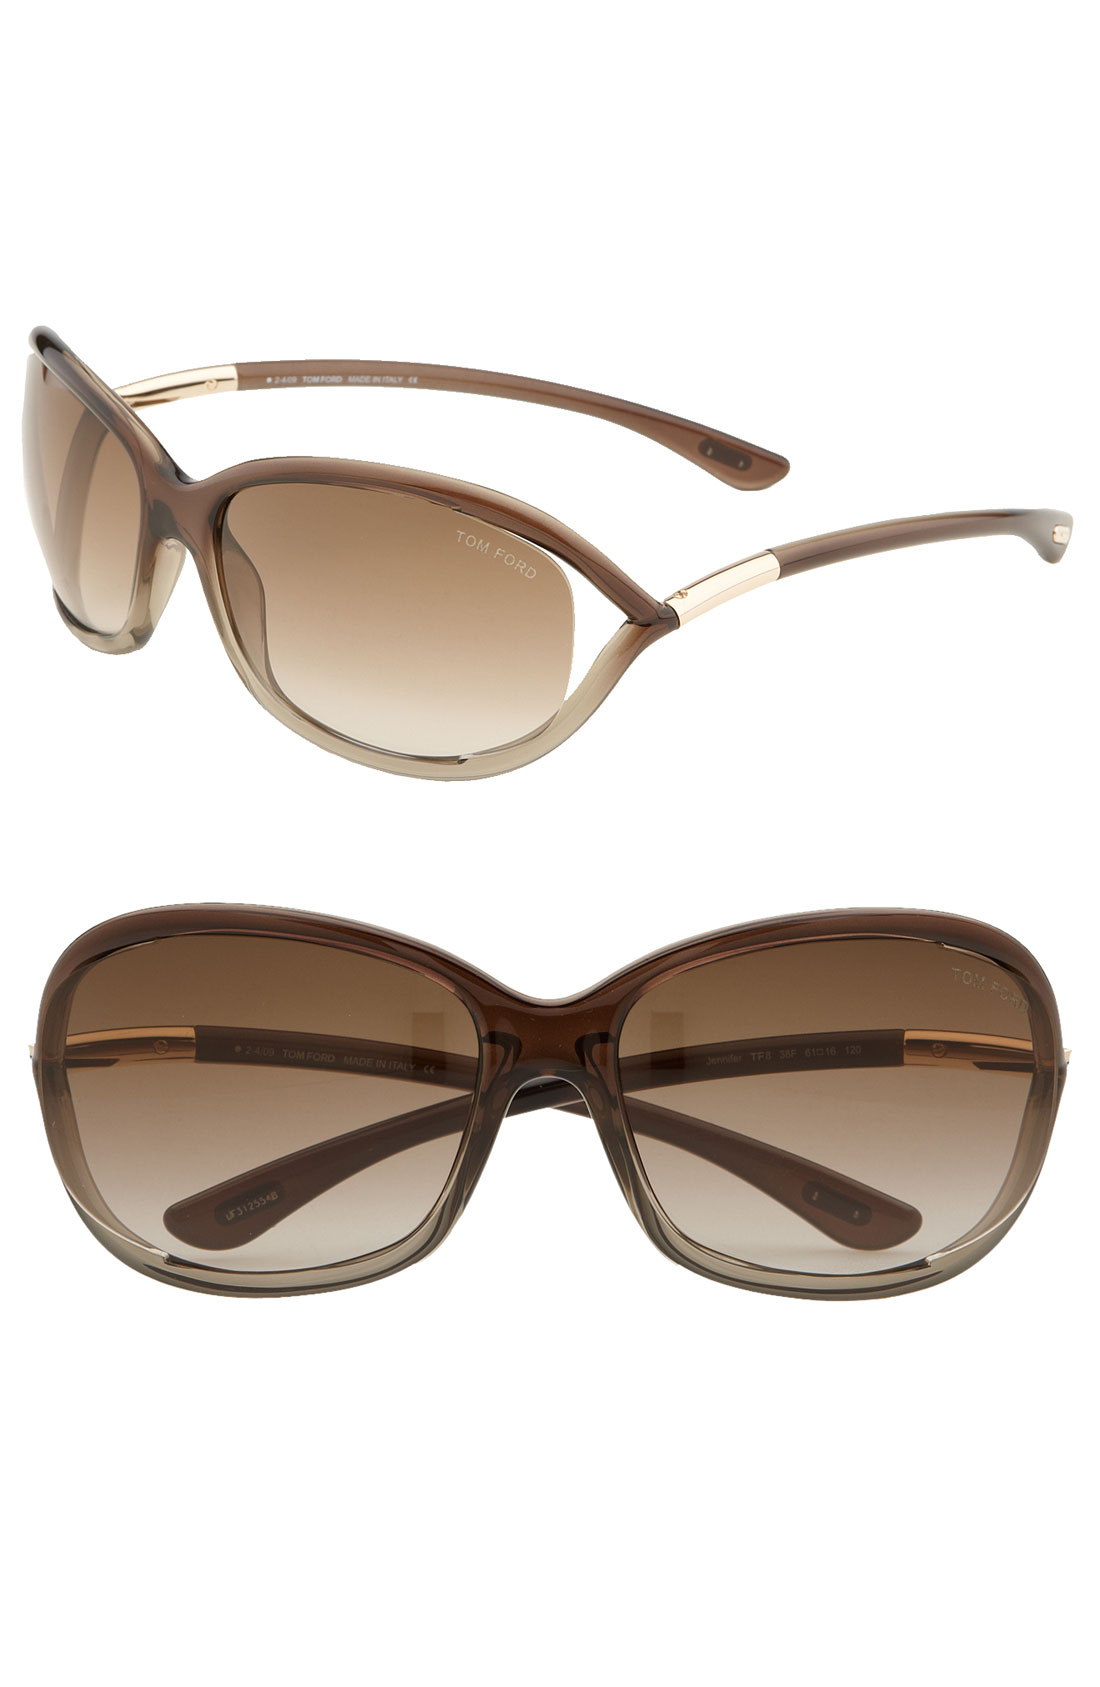 tom ford 39 jennifer 39 61mm oval frame sunglasses in brown brown. Cars Review. Best American Auto & Cars Review